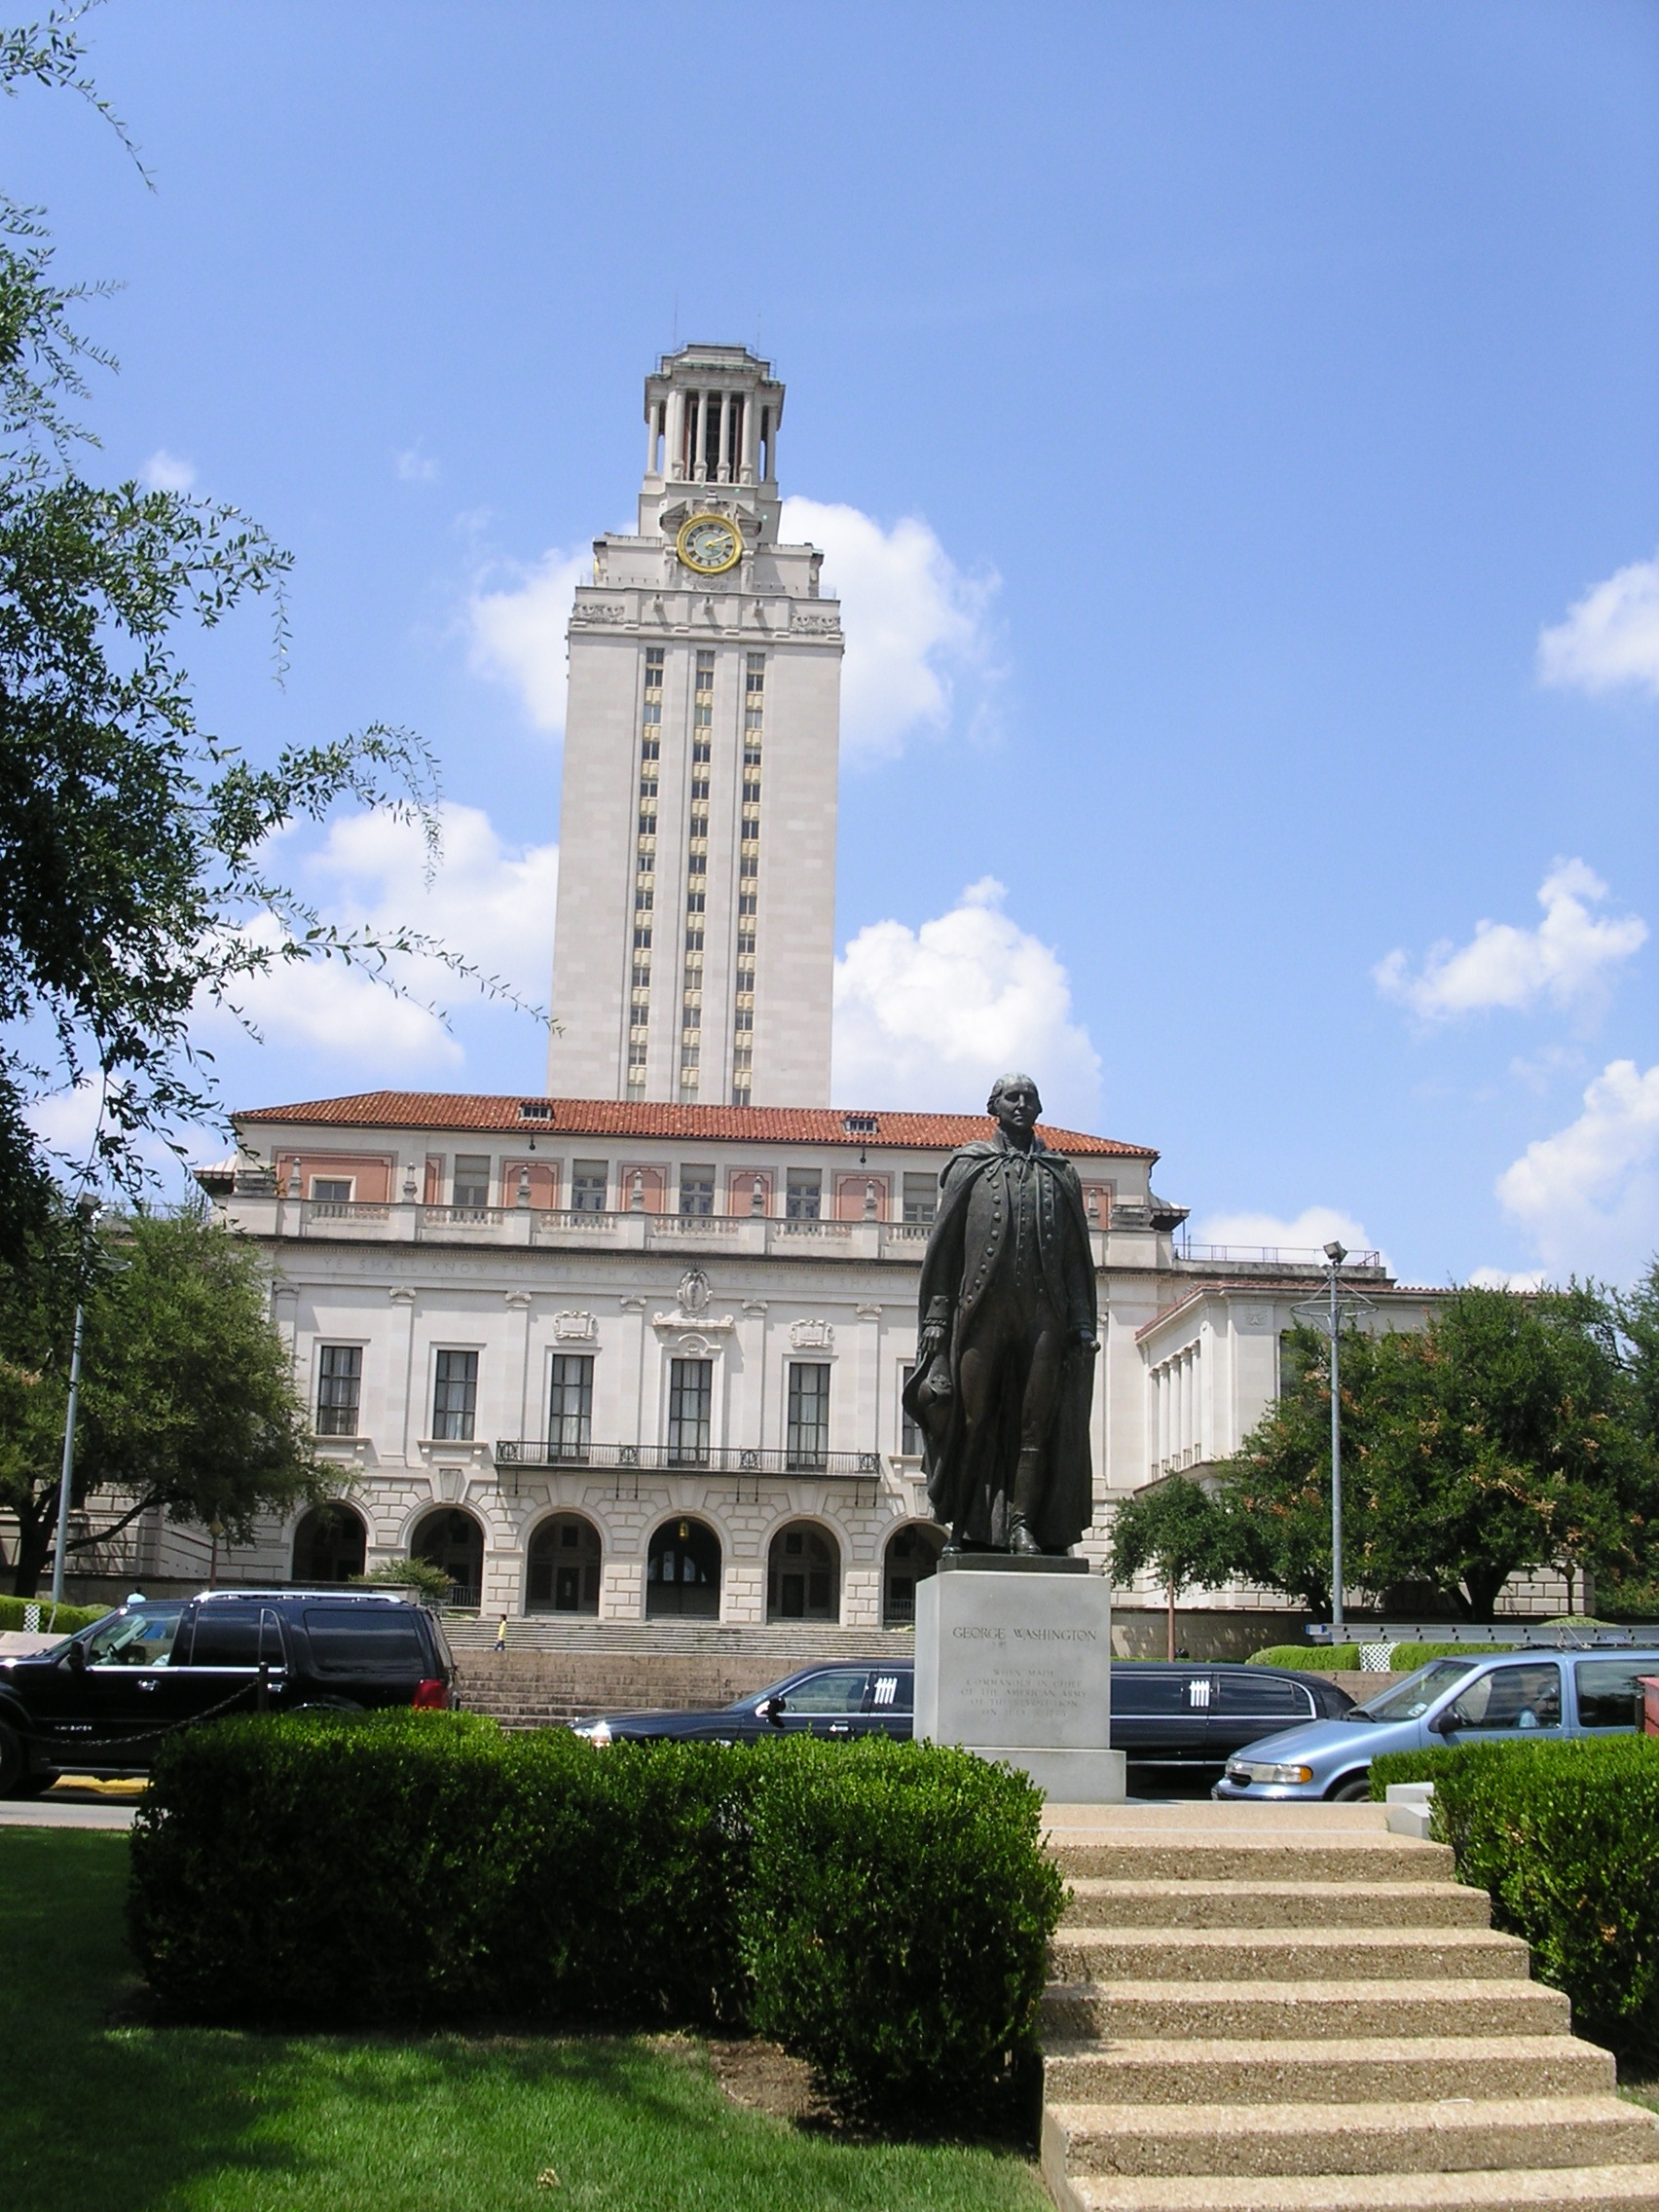 University Of Texas Organizational Chart: Usa texas austin budova university tower 2005.jpg - Wikimedia ,Chart